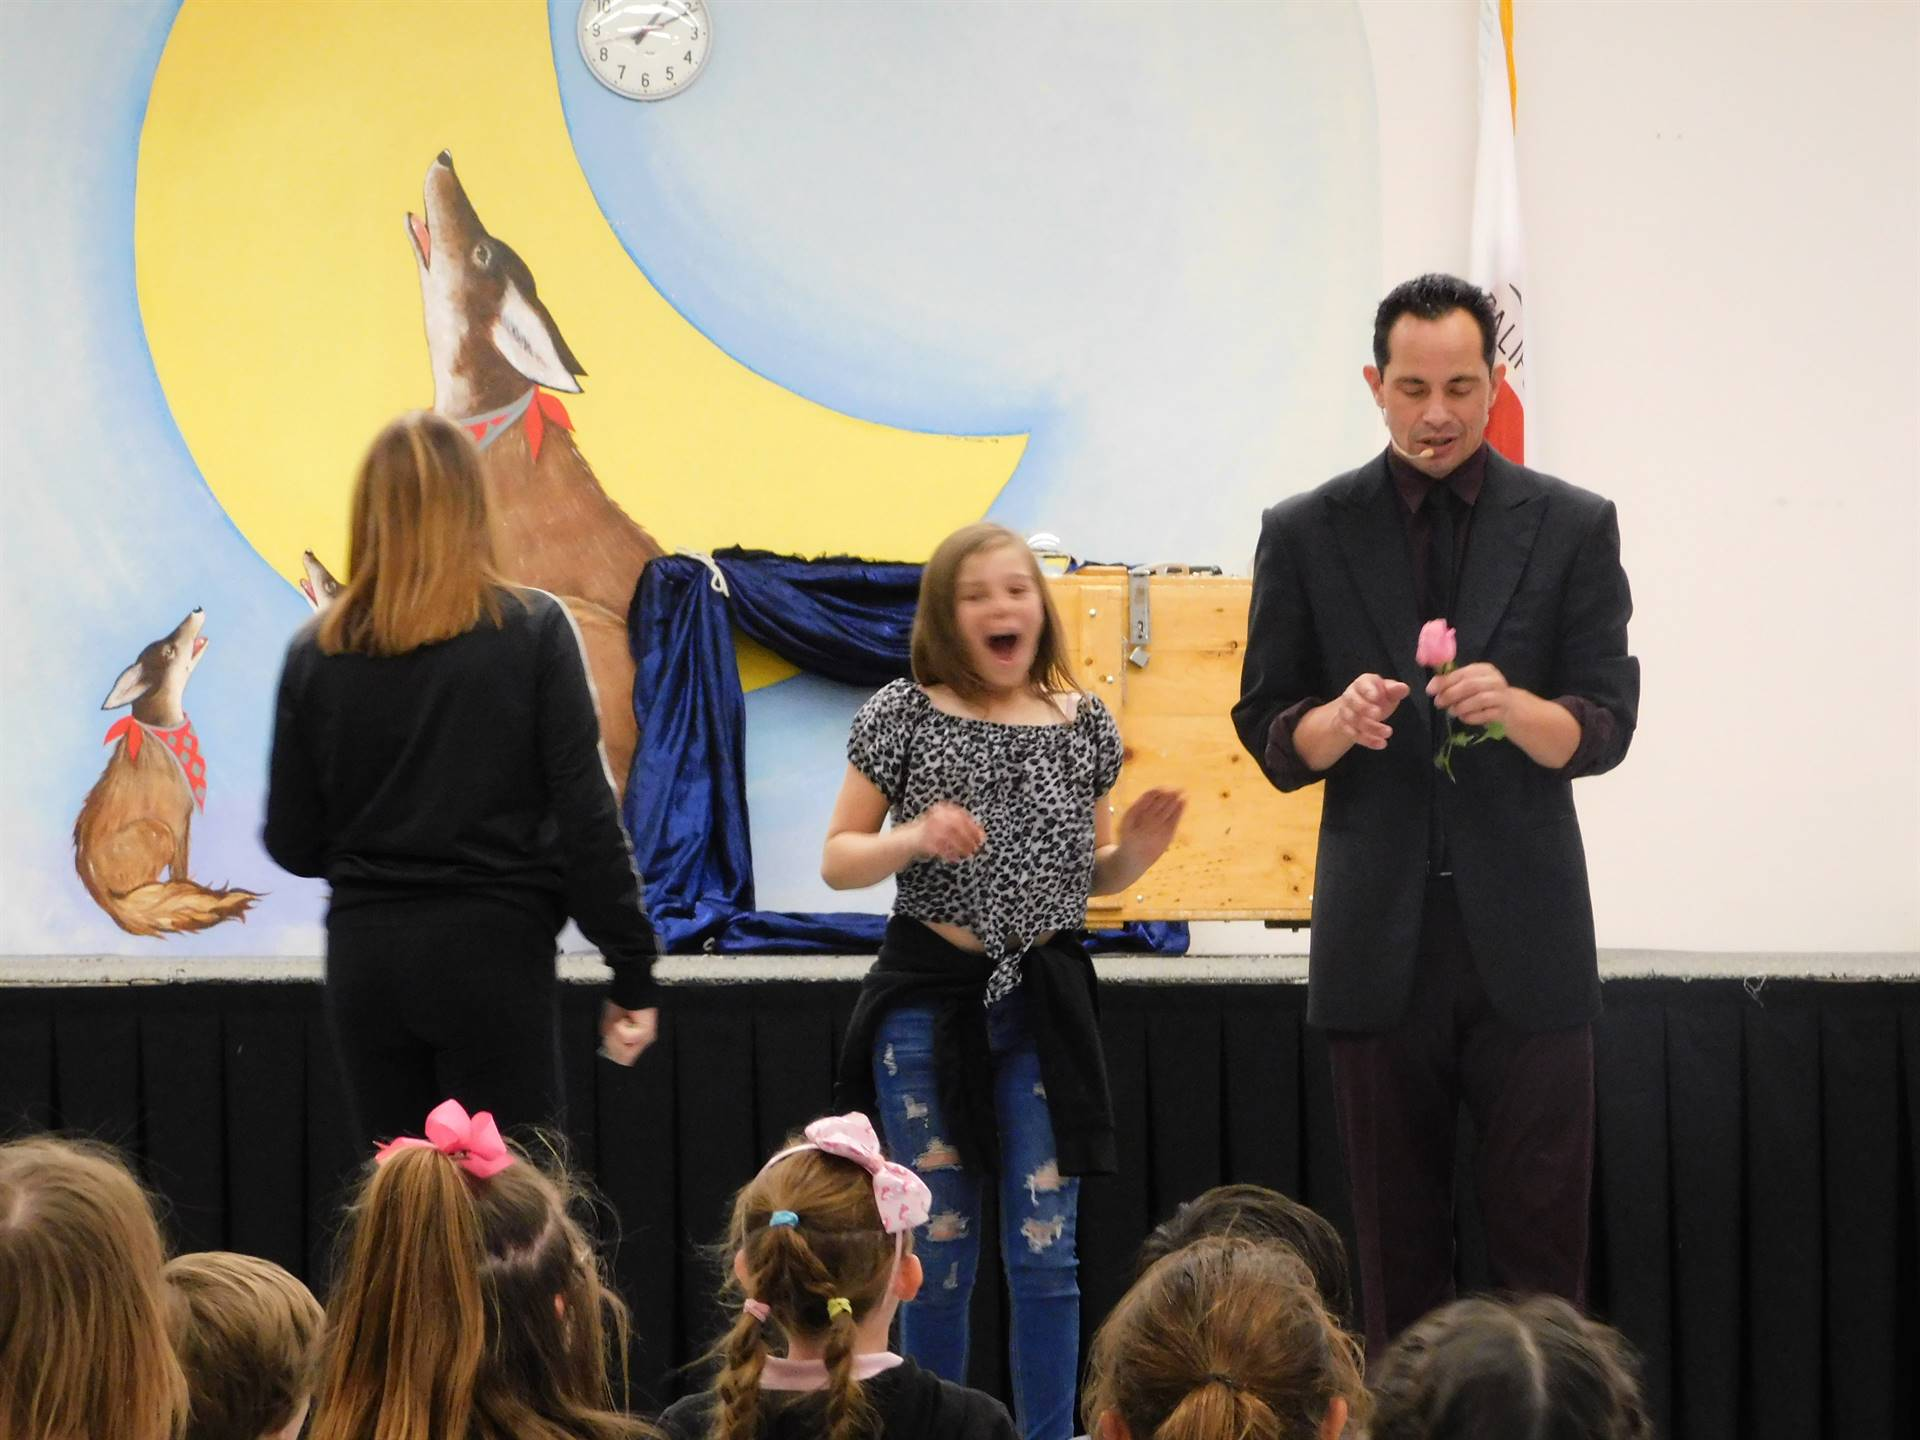 A student is amazed my a magic trick at the LES magic show